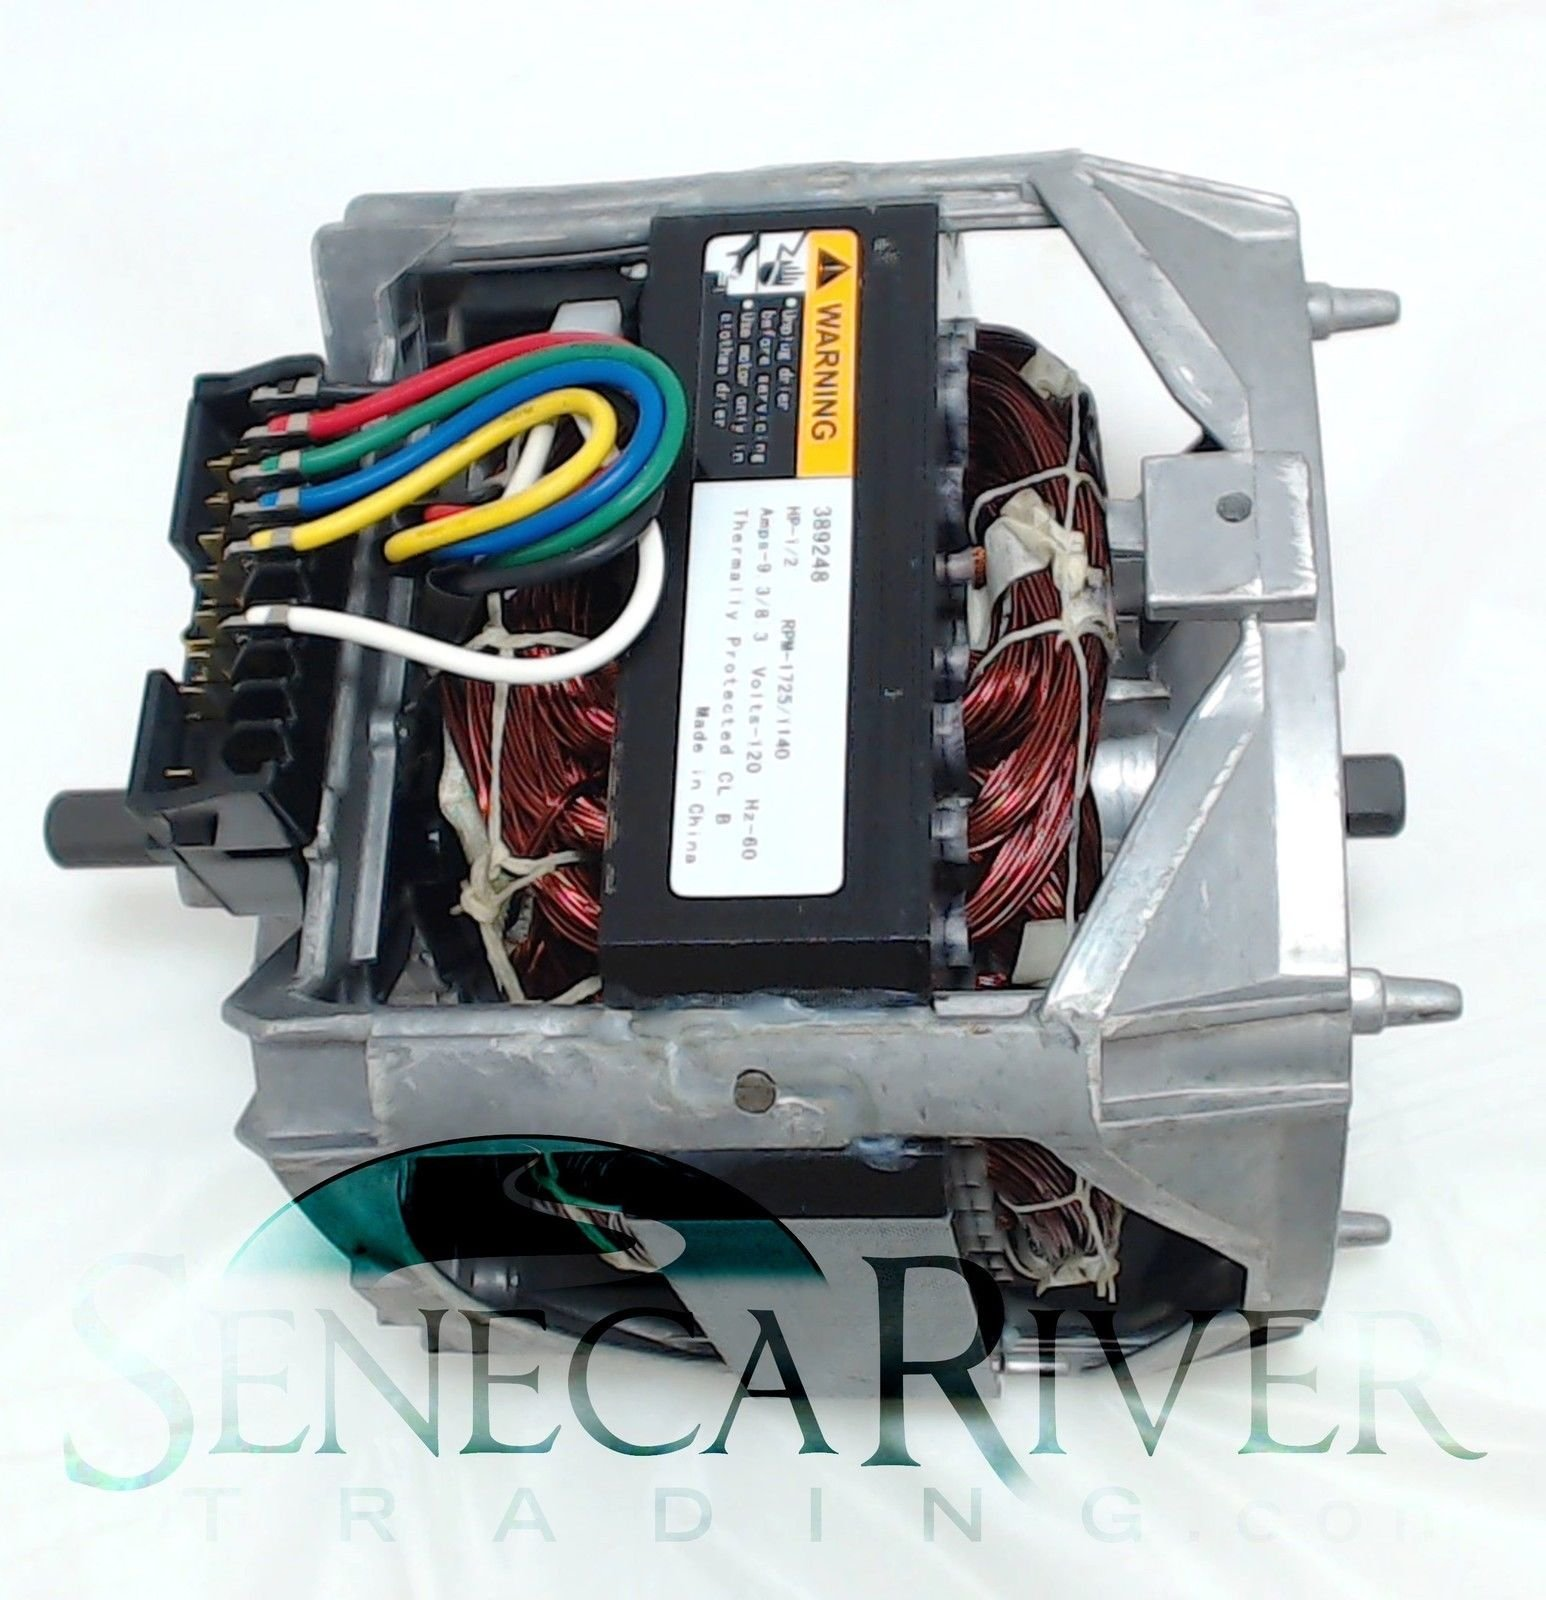 Washing Machine Motor for Whirlpool, AP6010250, PS11743427, 389248, WP661600 by Seneca River Trading